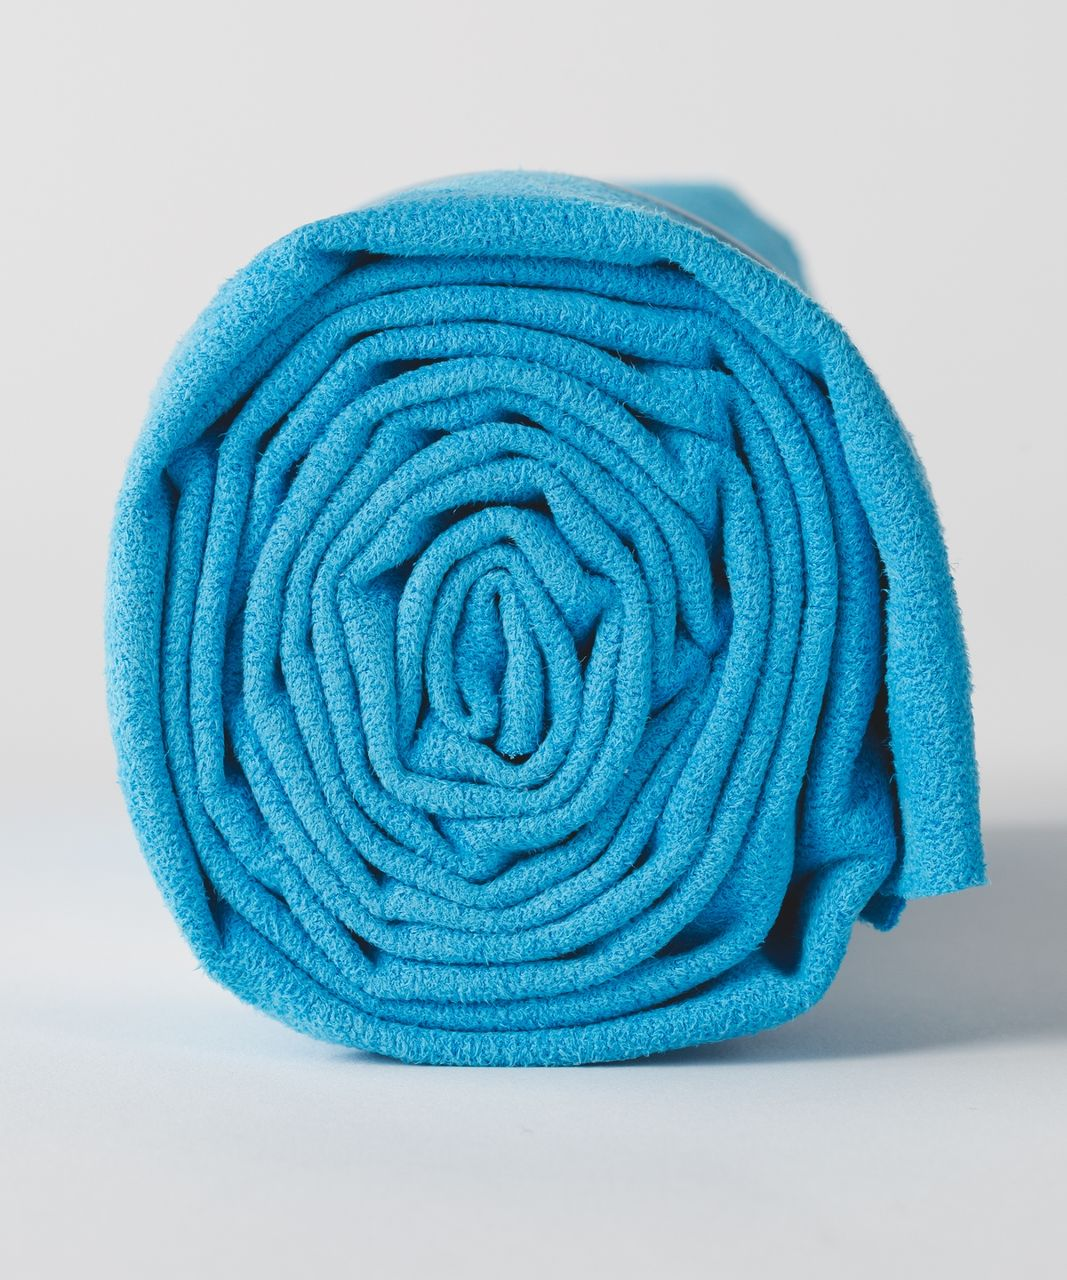 Lululemon The Towel - Kayak Blue